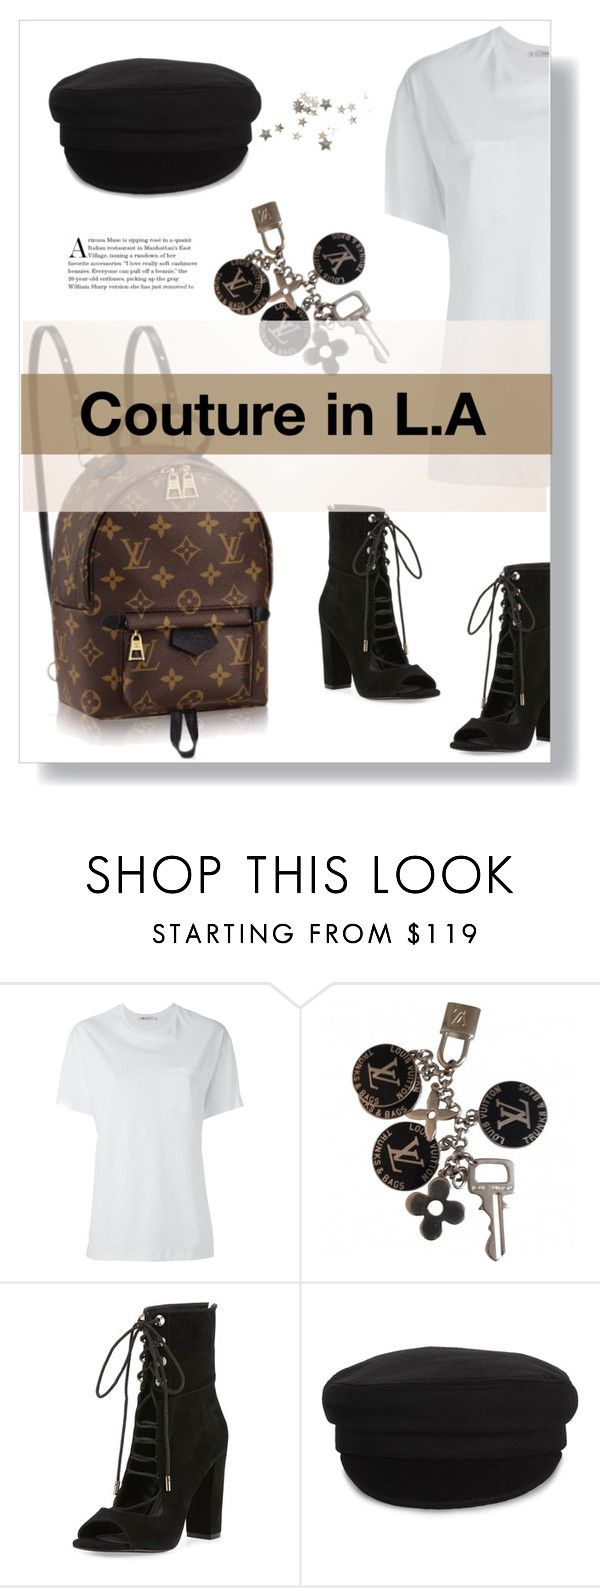 """""""Couture in L.A"""" by out-style ❤ liked on Polyvore featuring Louis Vuitton, T By Alexander Wang, Kendall + Kylie and Étoile Isabel Marant"""